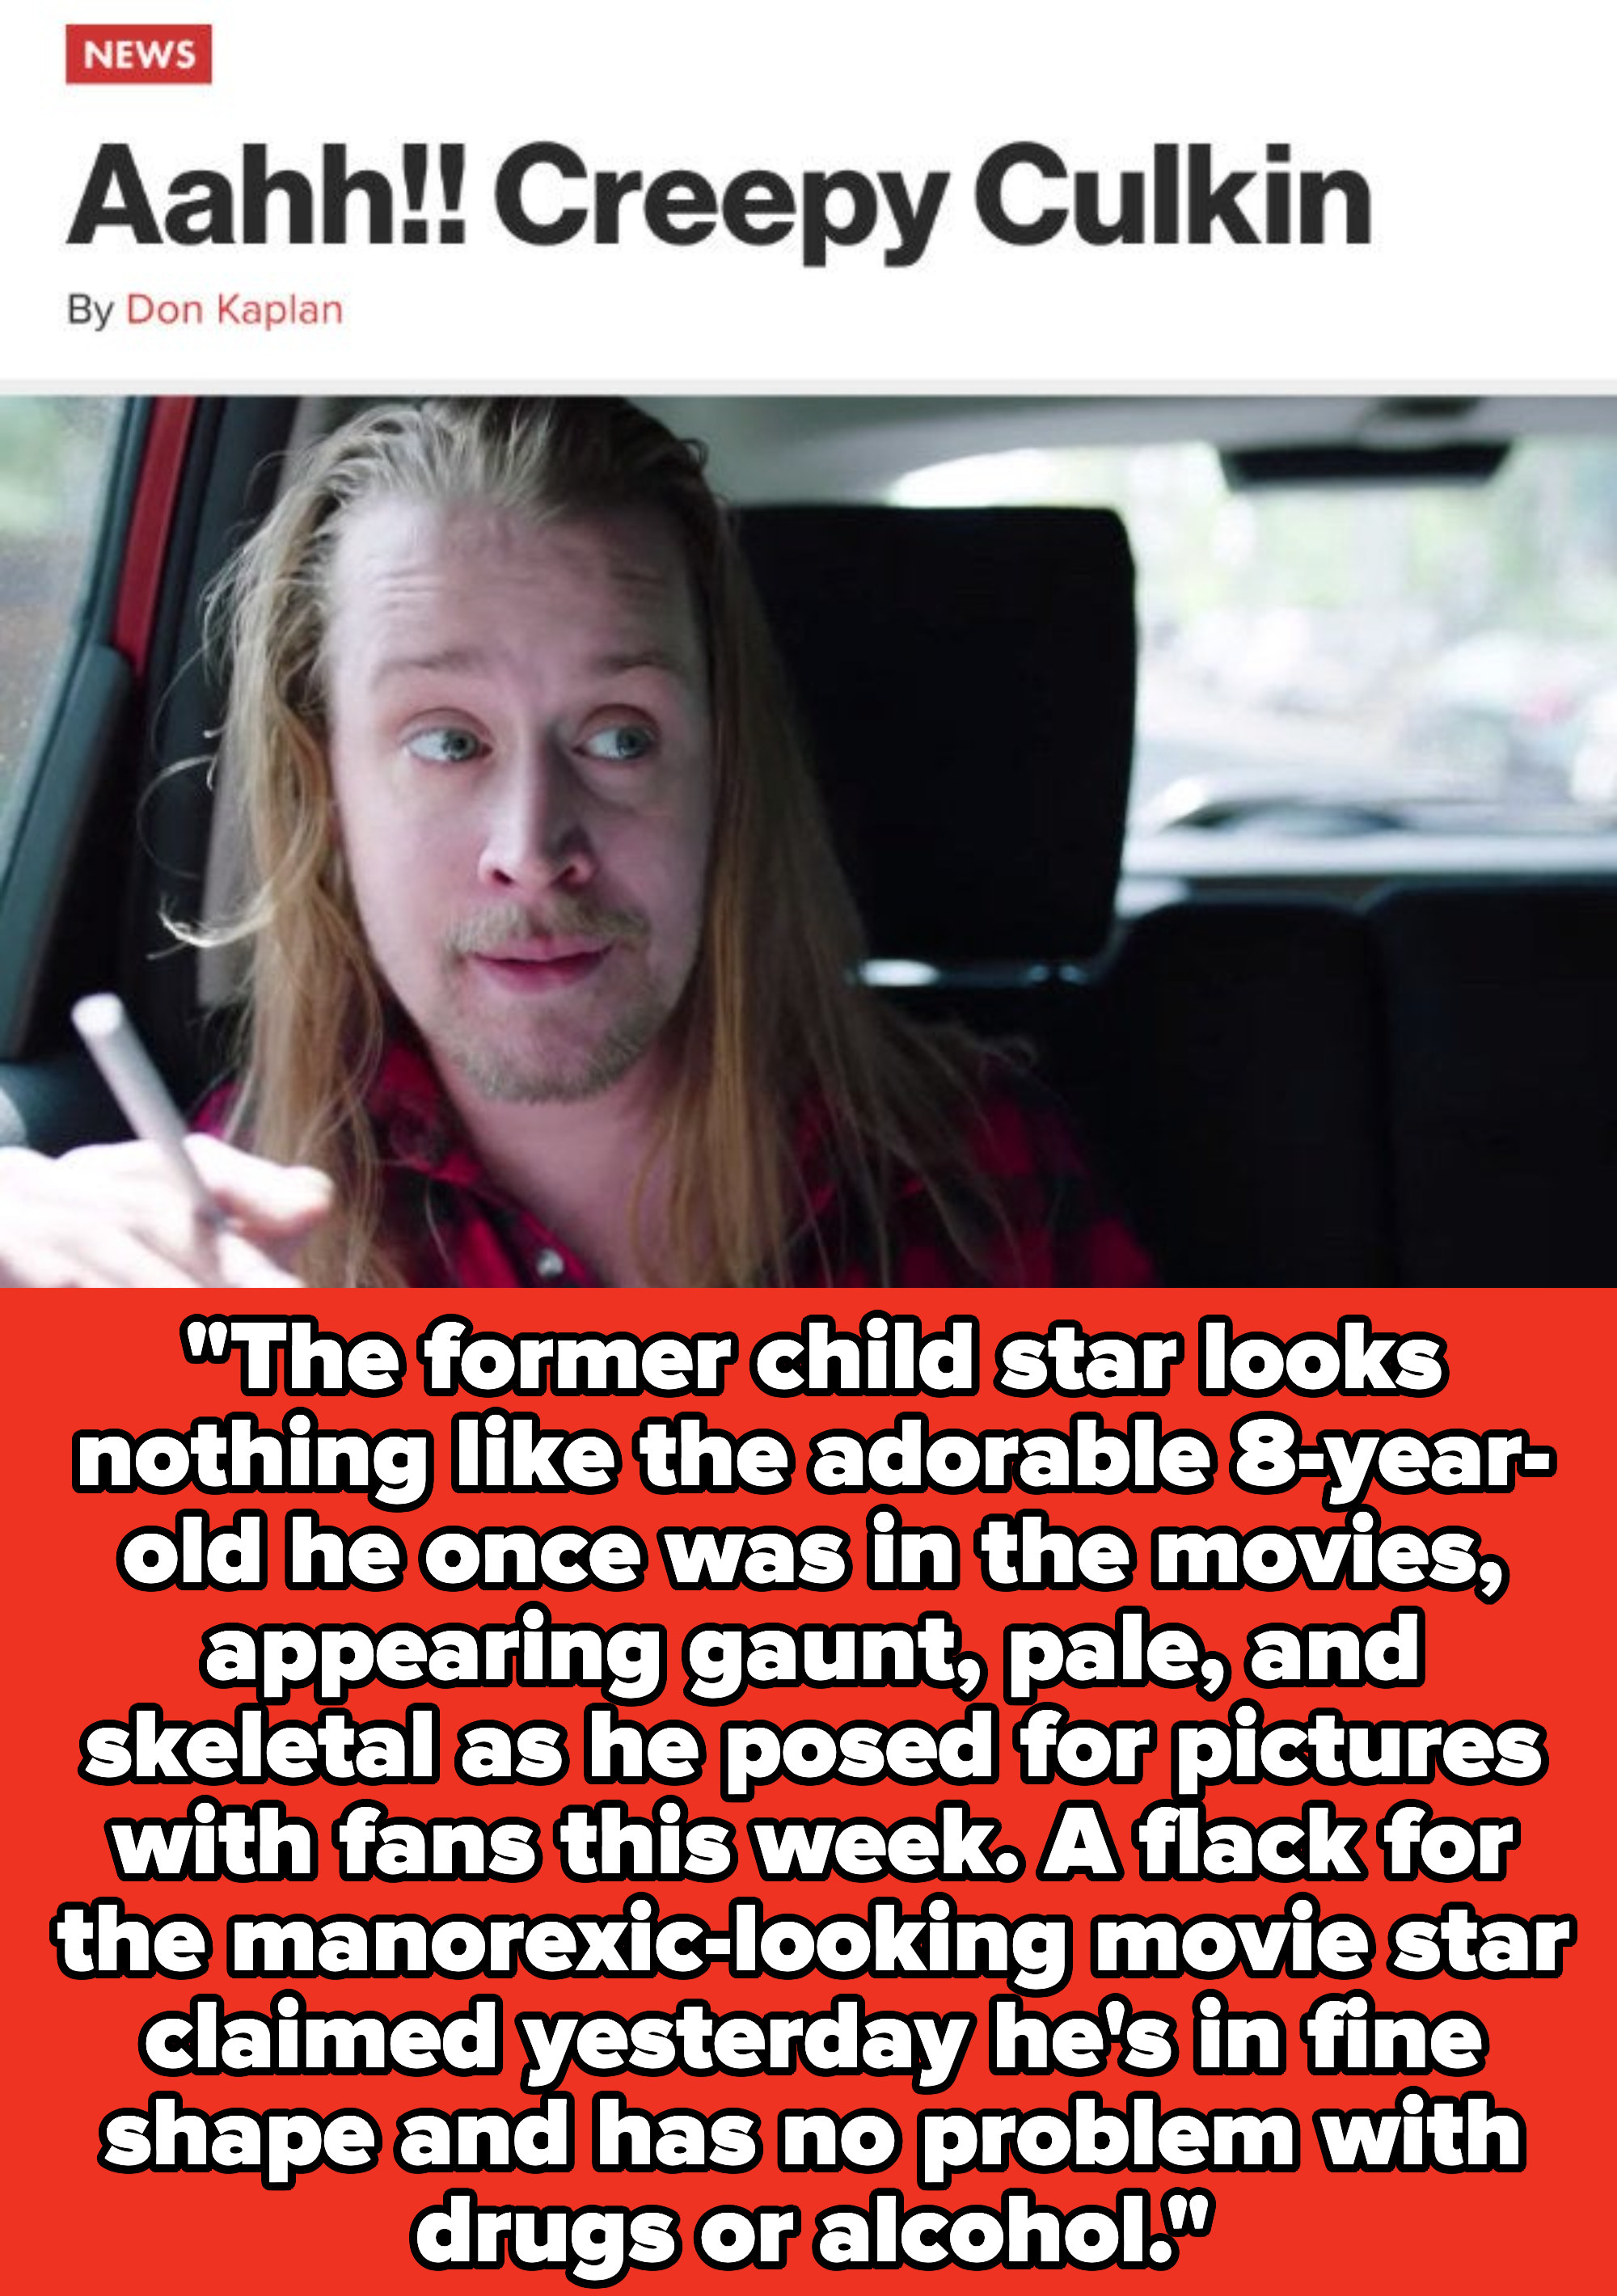 """New York Post quote: """"The former child star looks nothing like the adorable 8-year-old he once was in the movies, appearing gaunt, pale, and skeletal"""""""